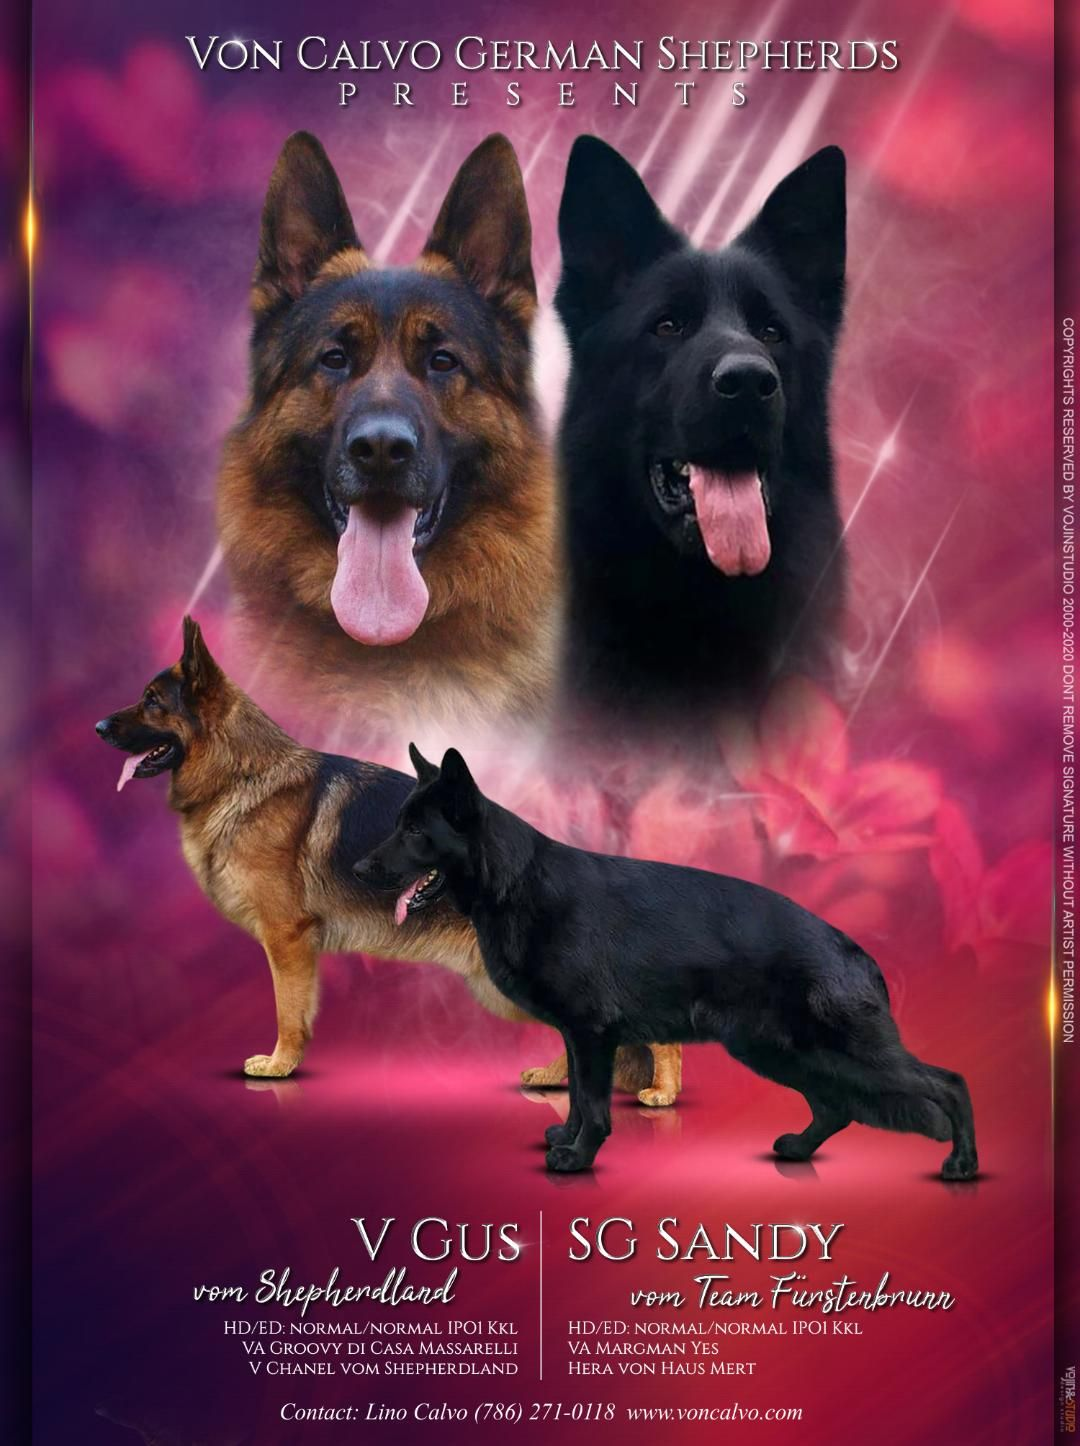 Von Calvo German Shepherds In 2020 German Shepherd Breeders German Shepherd Puppies German Shepherd